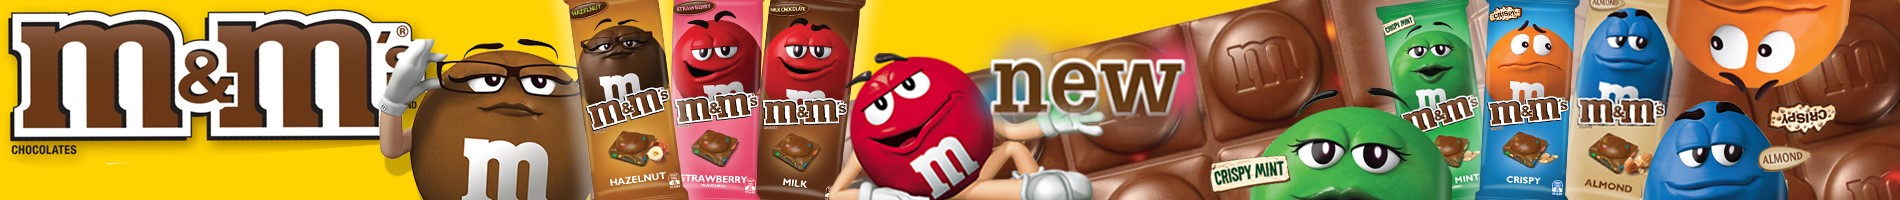 M&M's Chocolate Segment